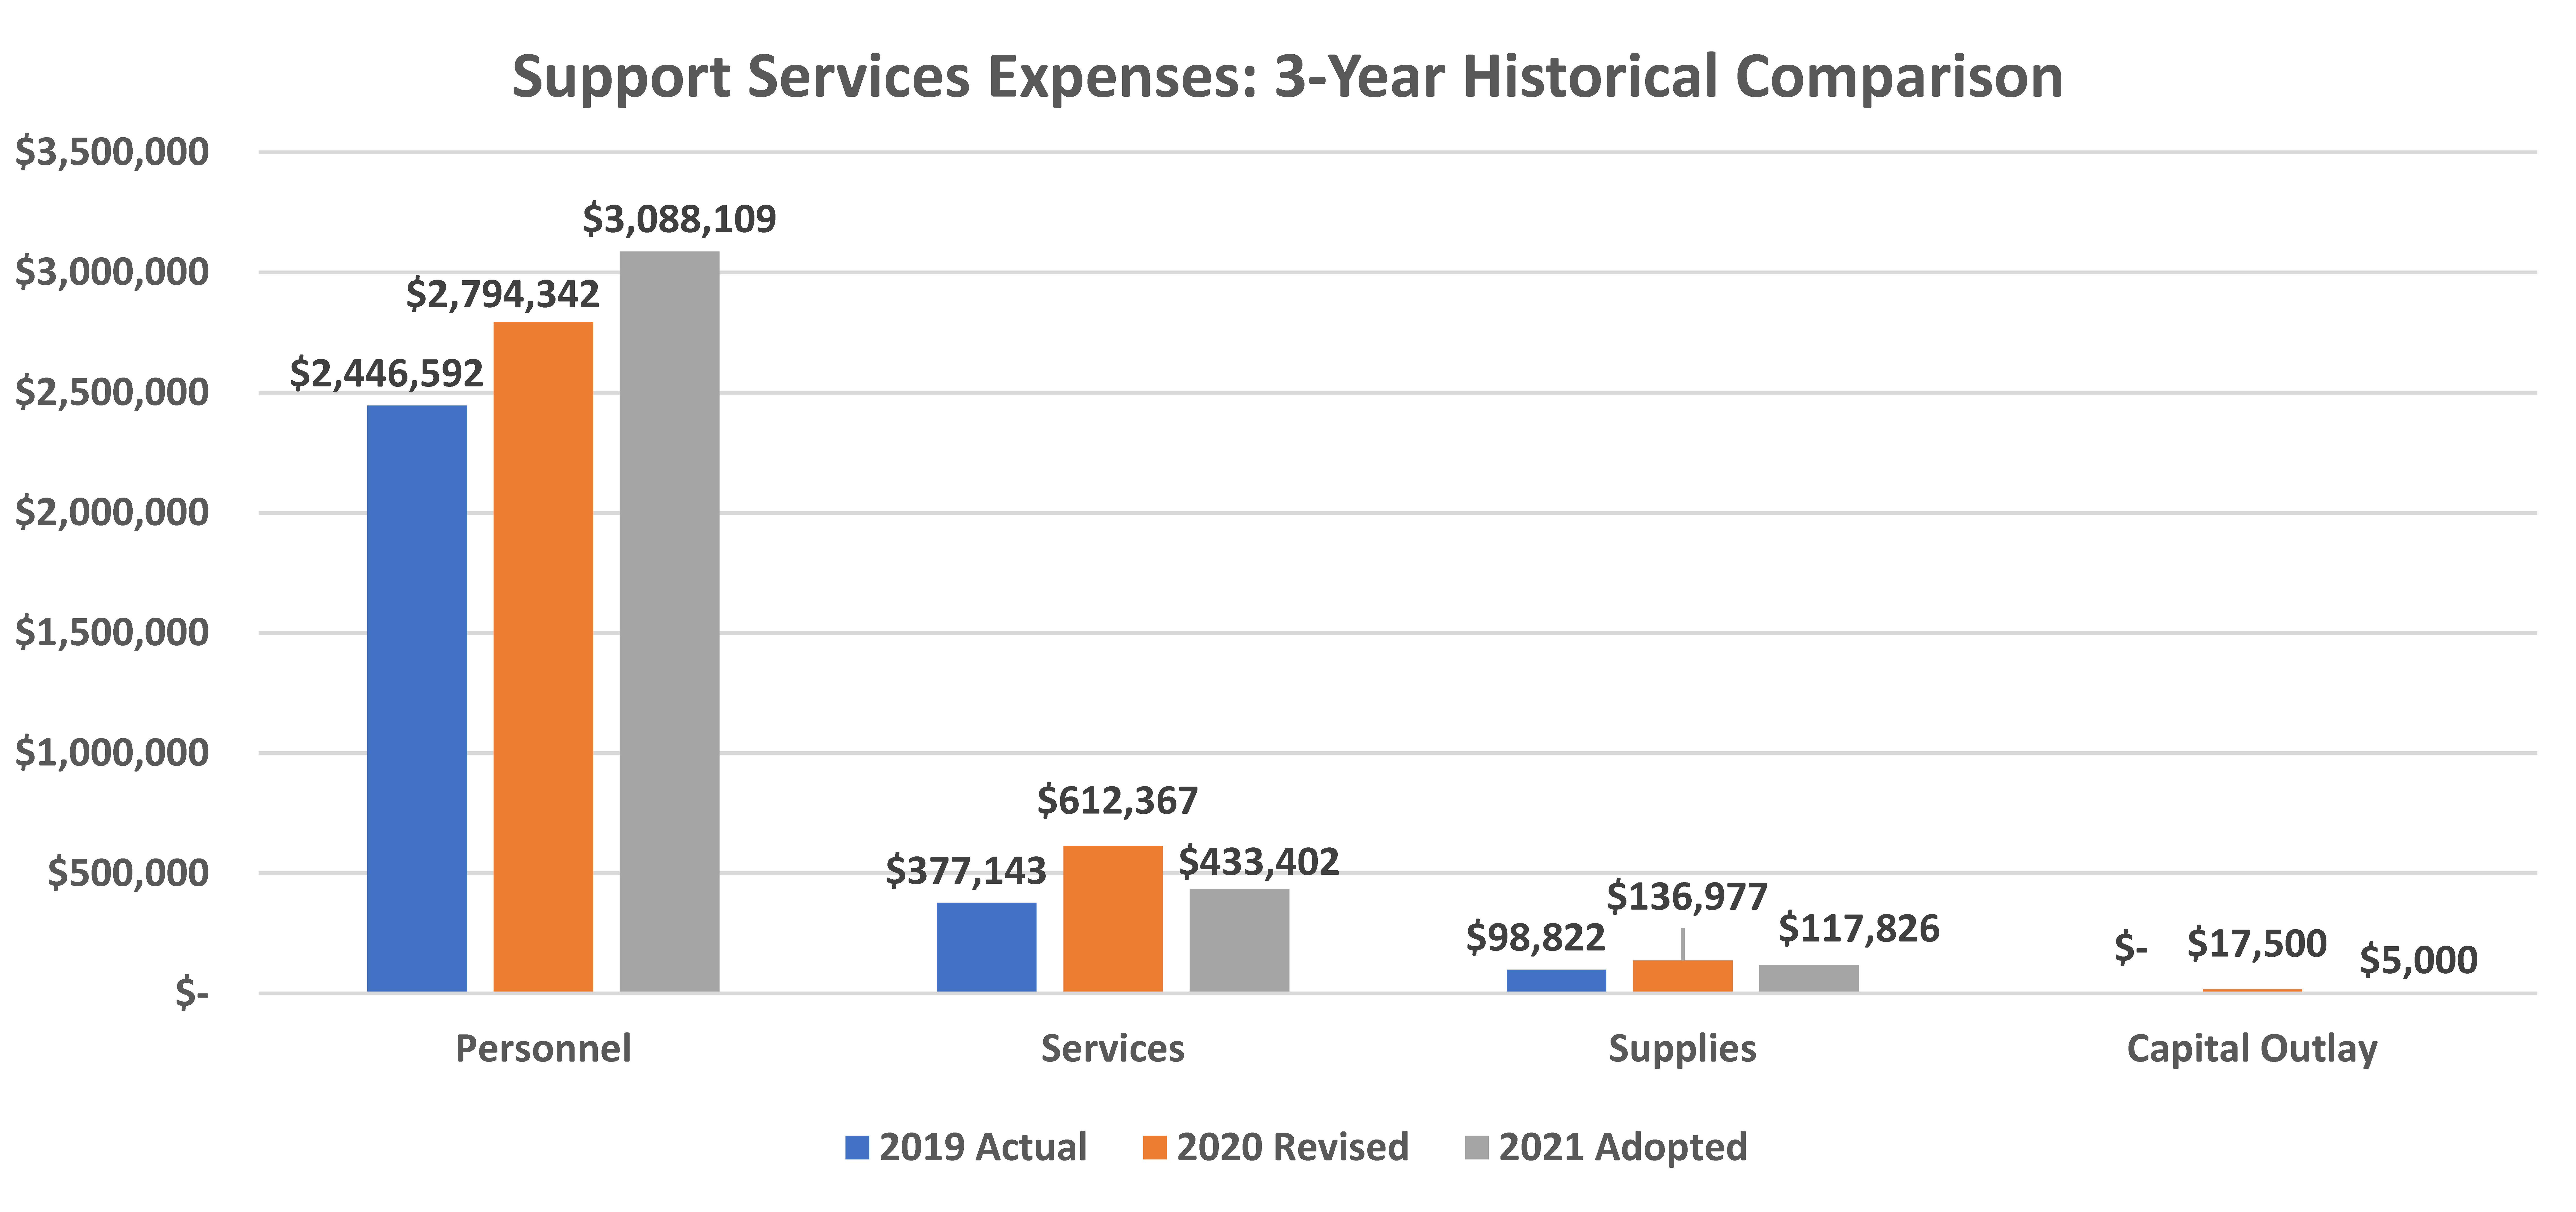 Police Support Services expenses - 3 year comparison